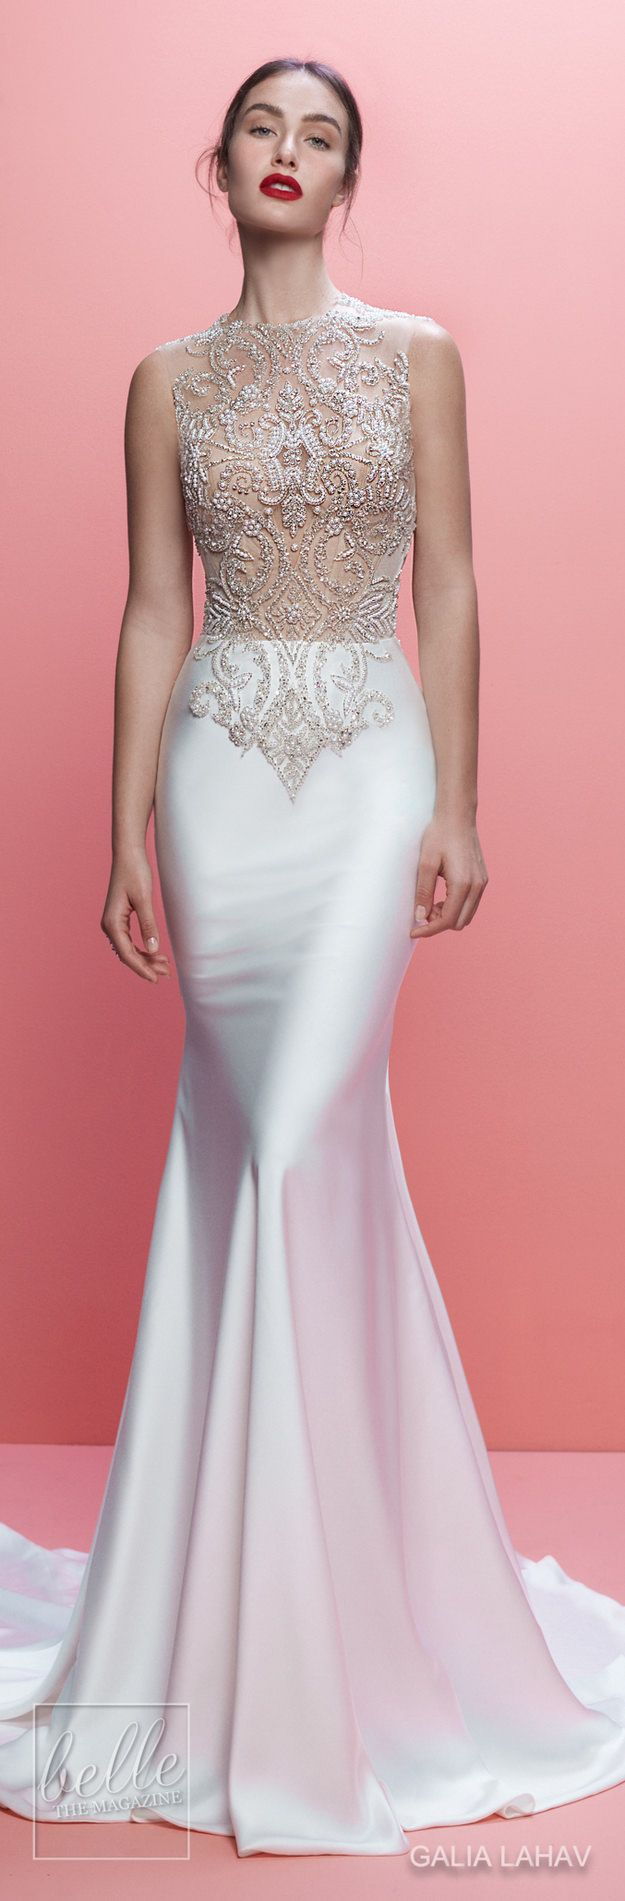 35 best Wedding Dresses 2019 images on Pinterest